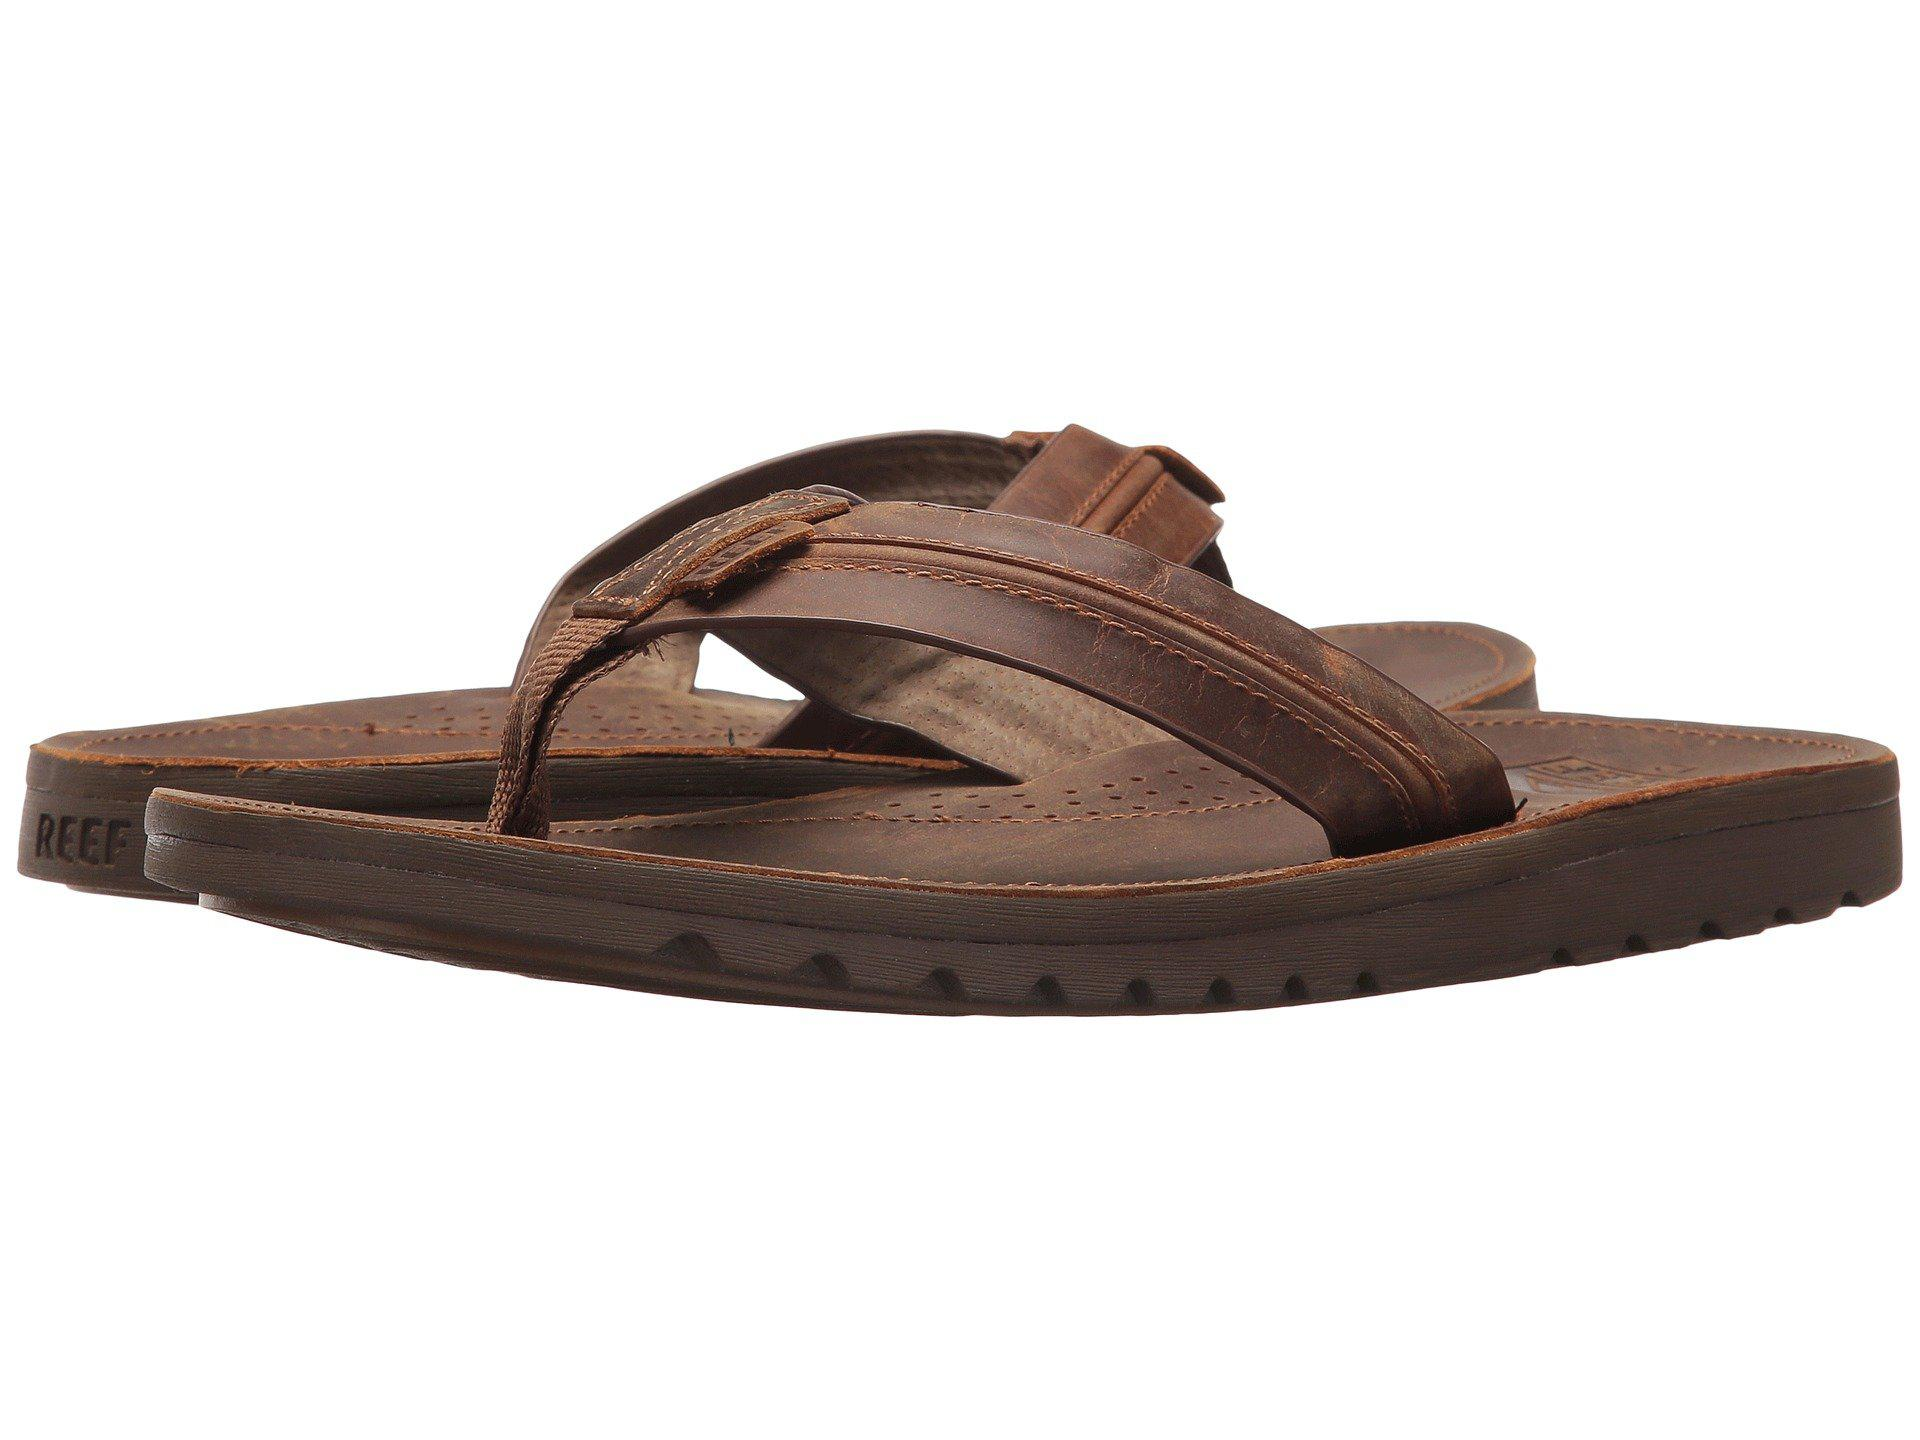 86094ab38a3f Lyst - Reef Voyage Lux (brown brown) Men s Sandals in Brown for Men